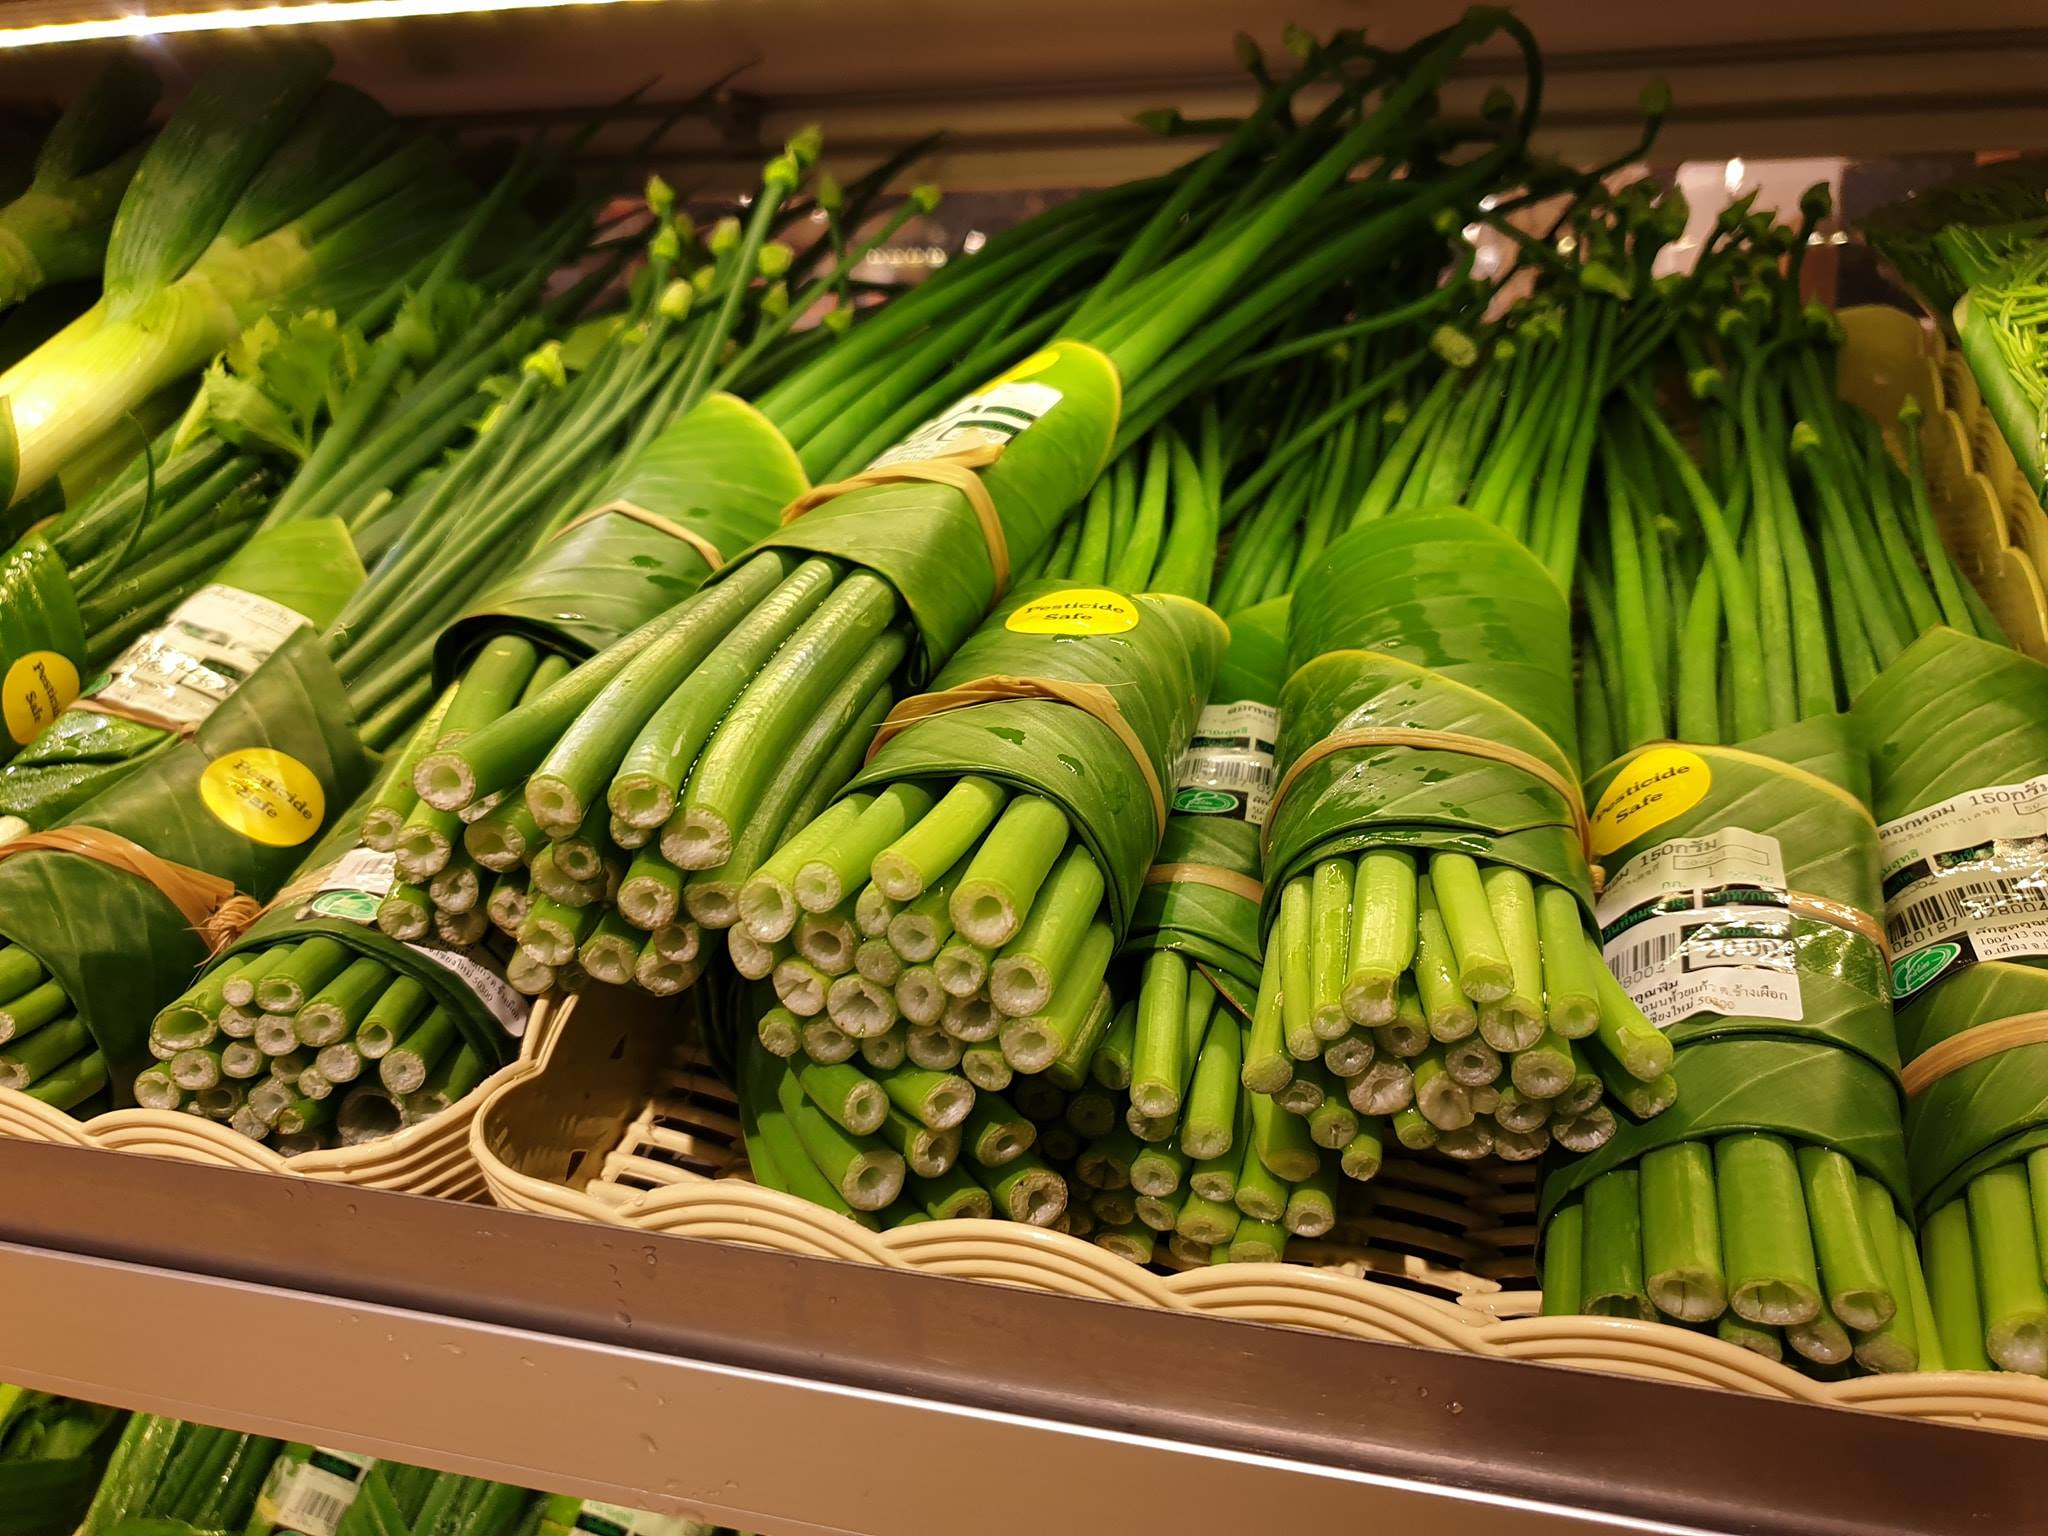 Lovely veg, wrapped in leaves. Credit: Facebook